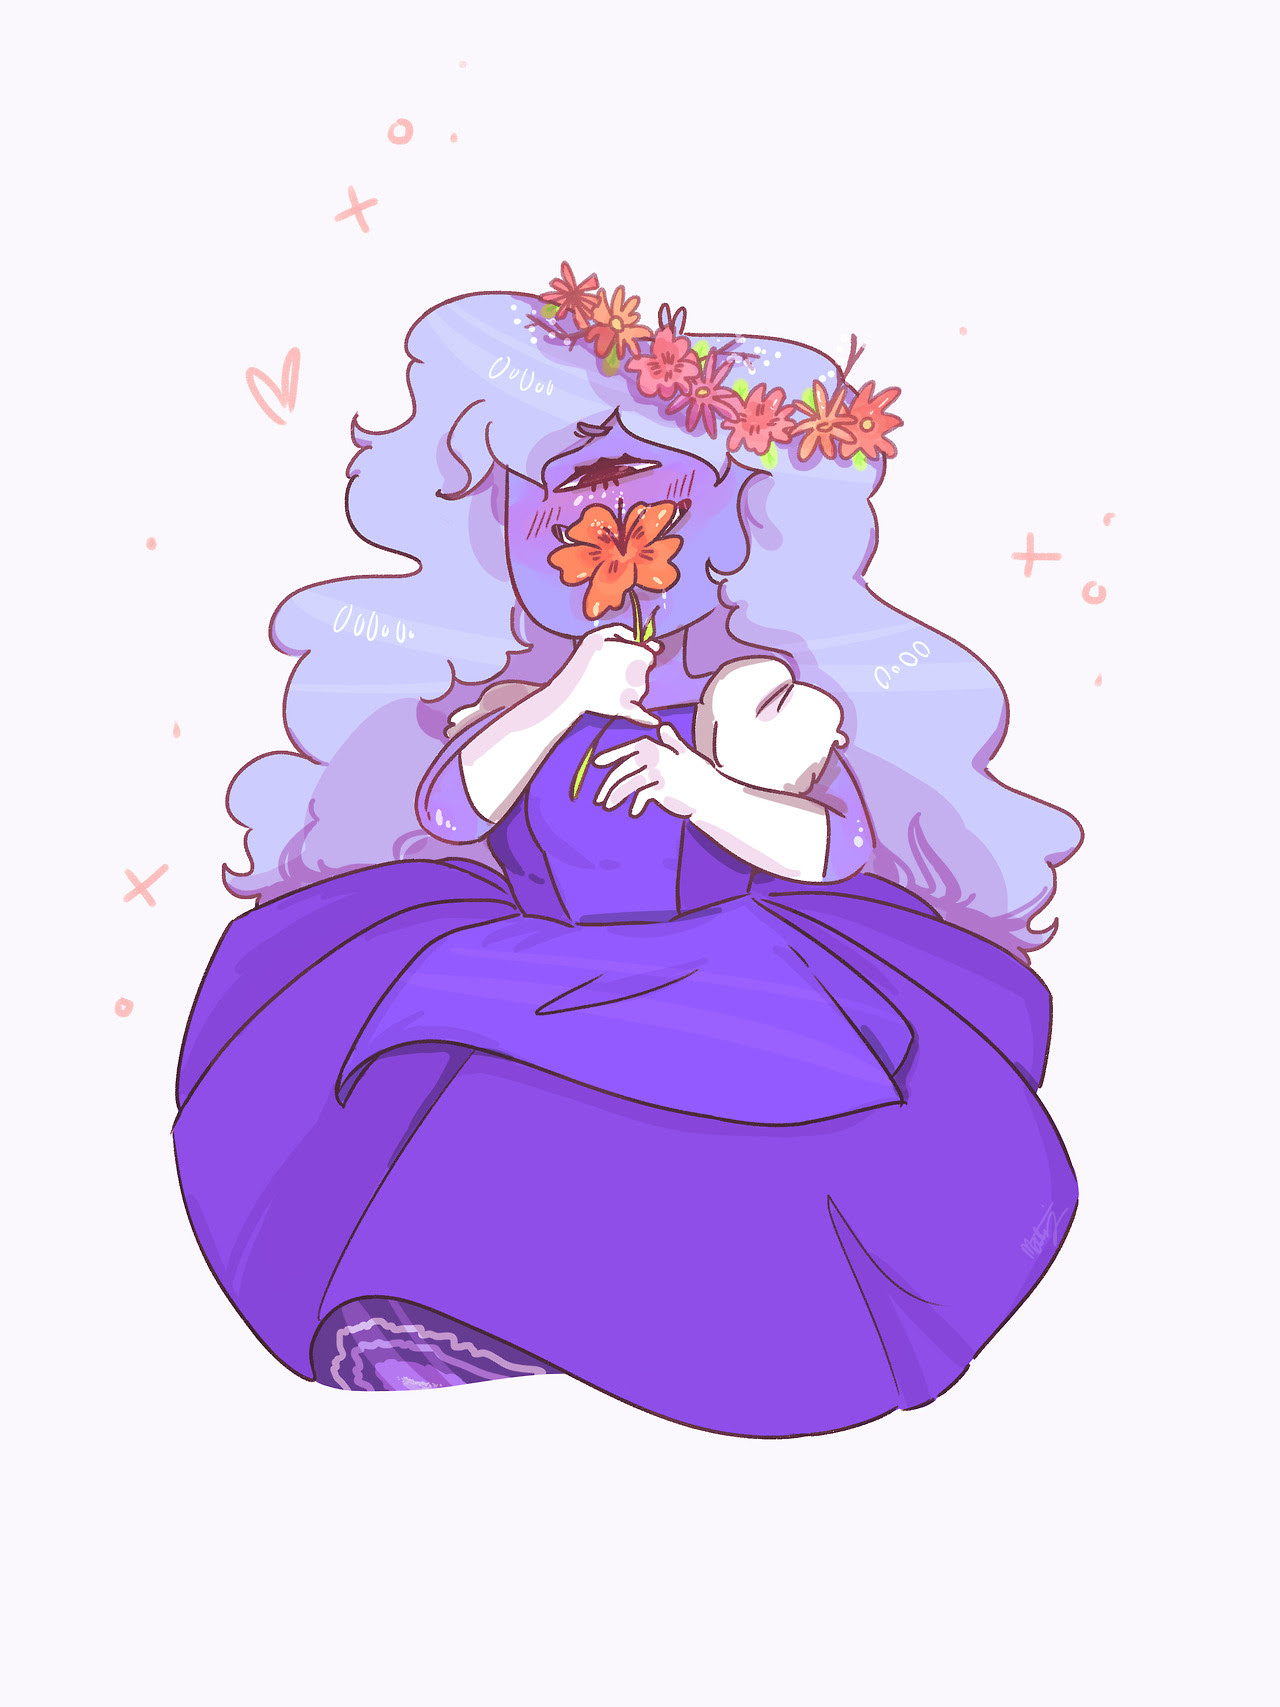 every sapphire I draw is completely different from the last